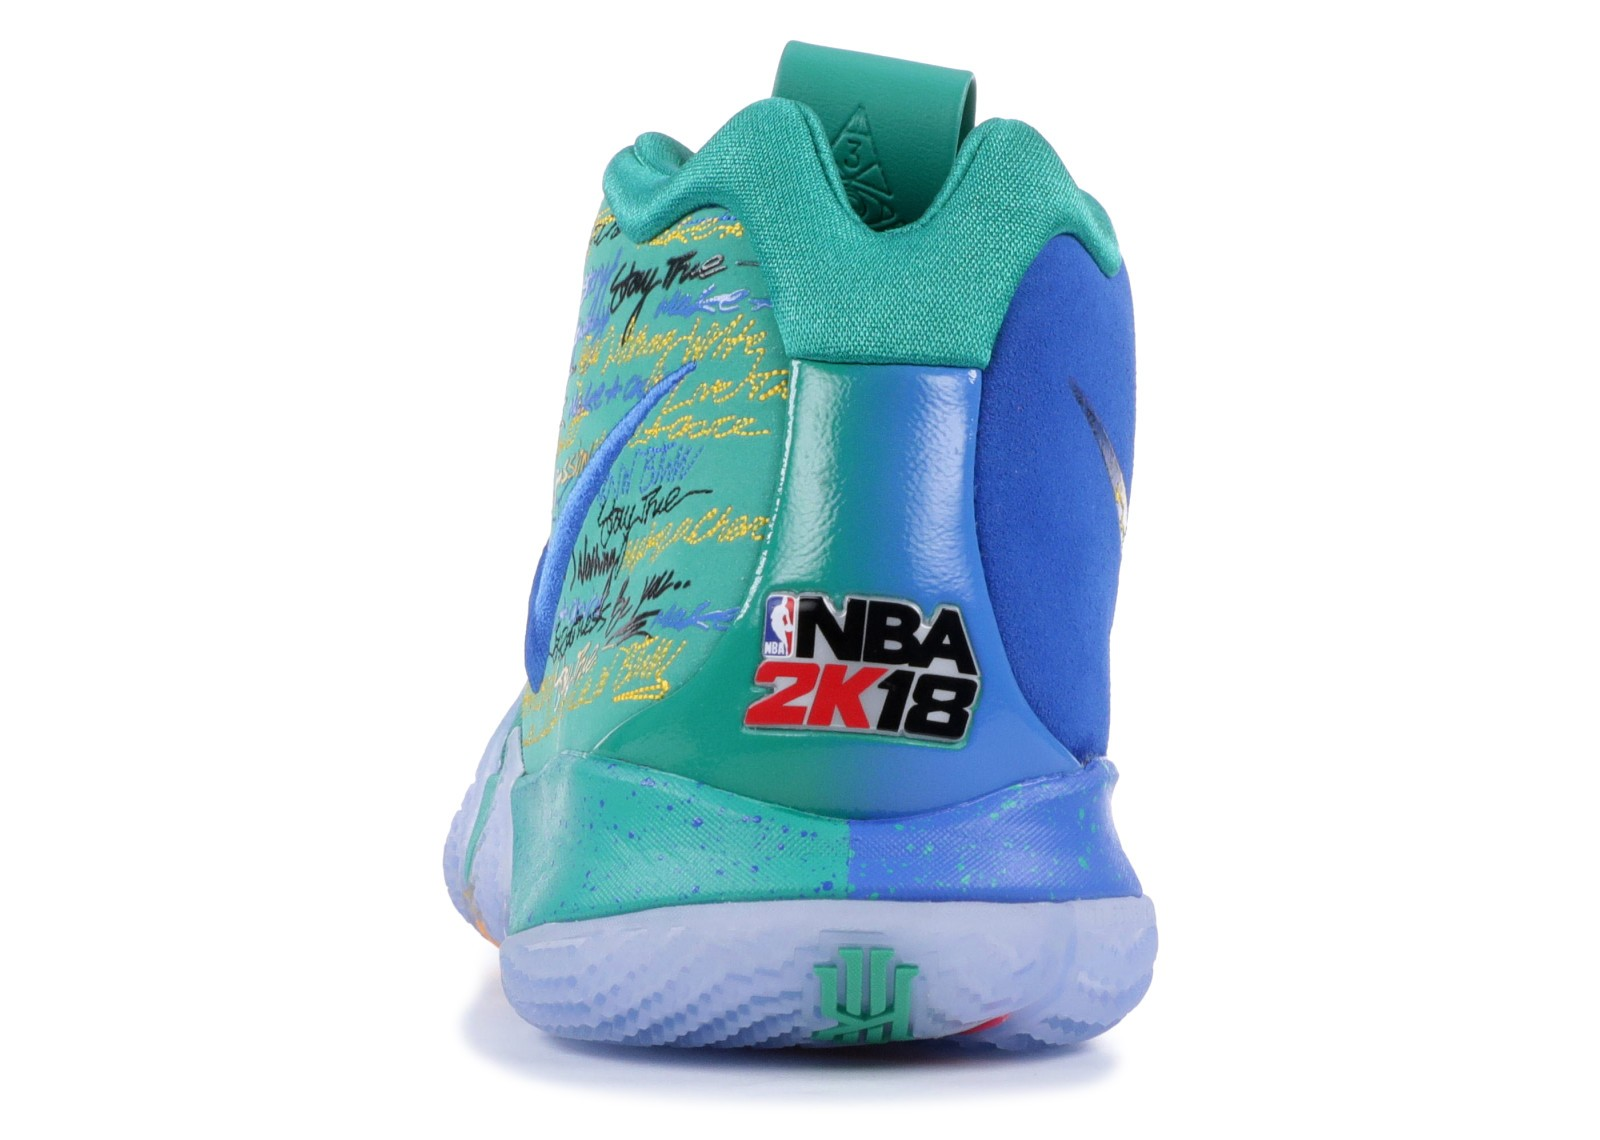 4ac91e20790d Kyrie 4 NBA 2k18 Friends And Family University Green Blue 860844-868 ...